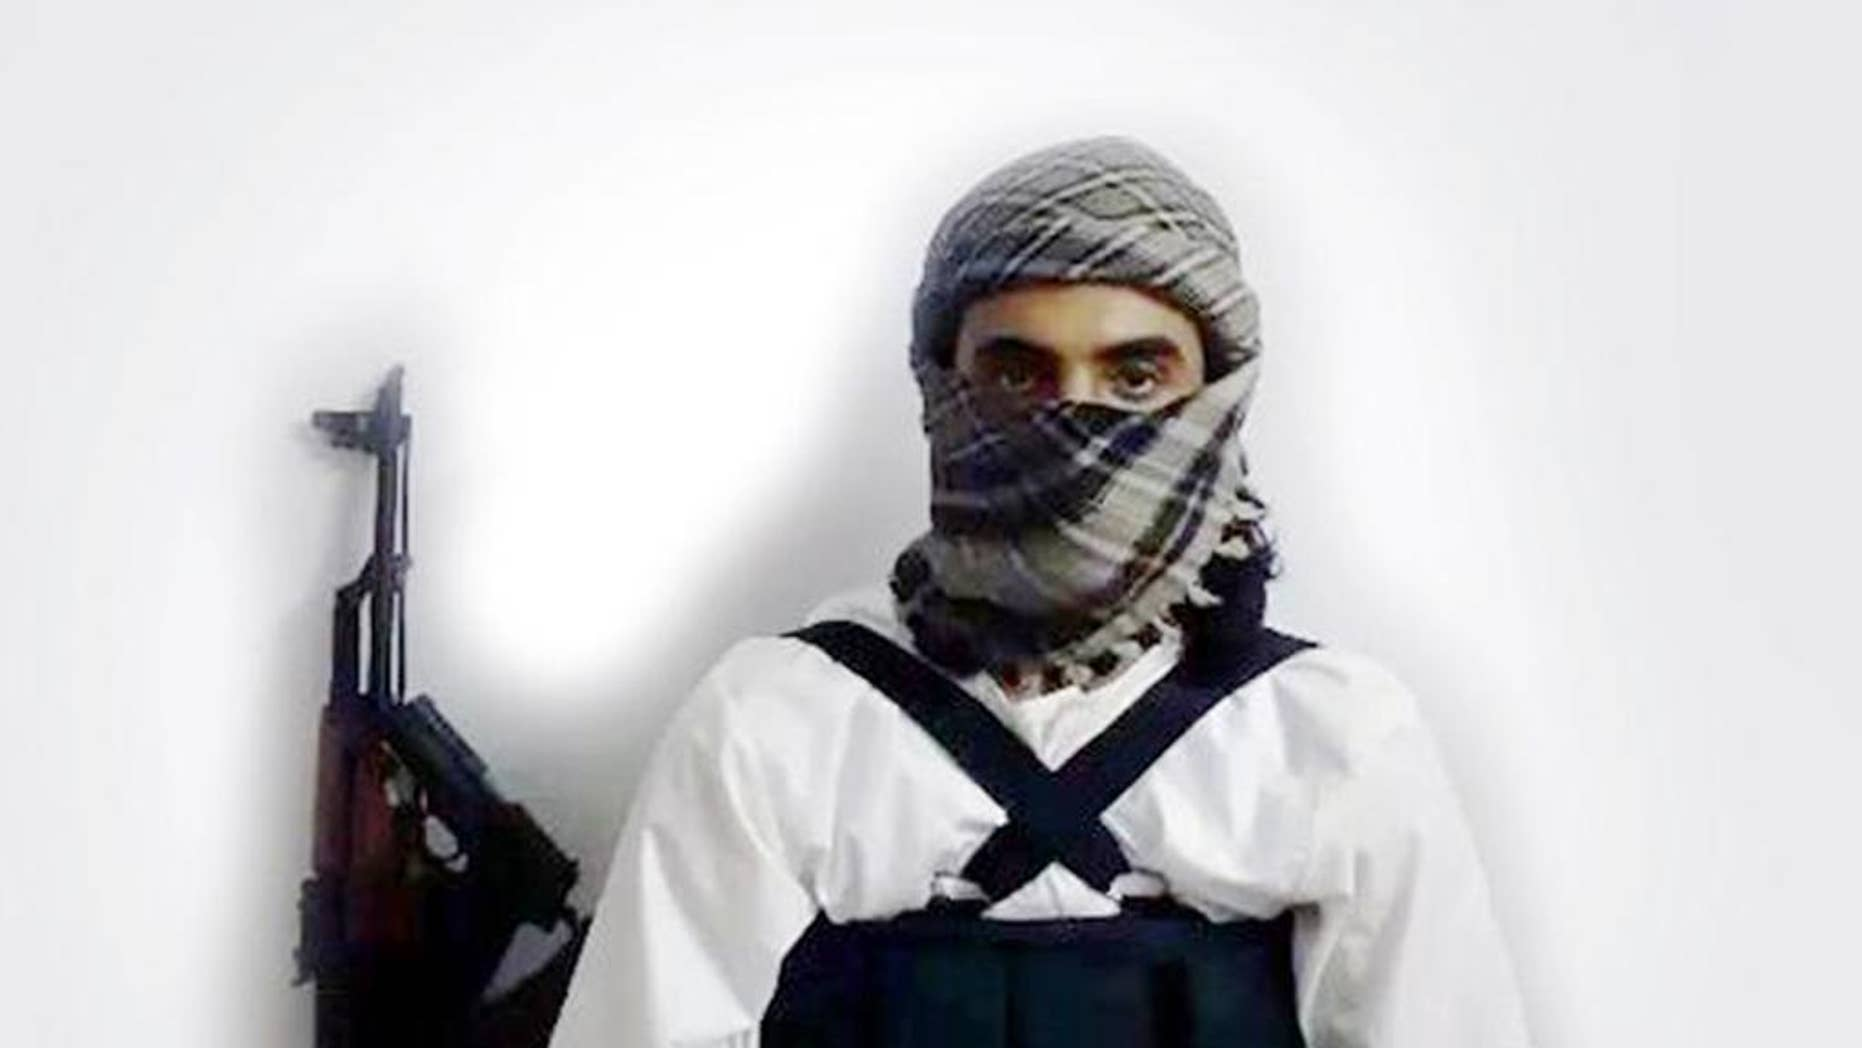 """FILE - This file image taken from a militant website associated with Islamic State extremists, posted Saturday, May 23, 2015, purports to show a suicide bomber,  with the Arabic bar below reading: """"Urgent: The heroic martyr Abu Amer al-Najdi, the attacker of the (Shiite) temple in Qatif"""",  which the Islamic State group's radio station claimed responsibility for.  Al-Bayan, the Islamic State radio targeting potential European recruits, touts recent triumphs in the campaign to carve out a Caliphate with contrast between the smooth, Western-style production and the extremist content showing how far the hardcore Islamic propaganda machine has come since its beginnings in 2012.  (Militant photo via AP, FILE)"""